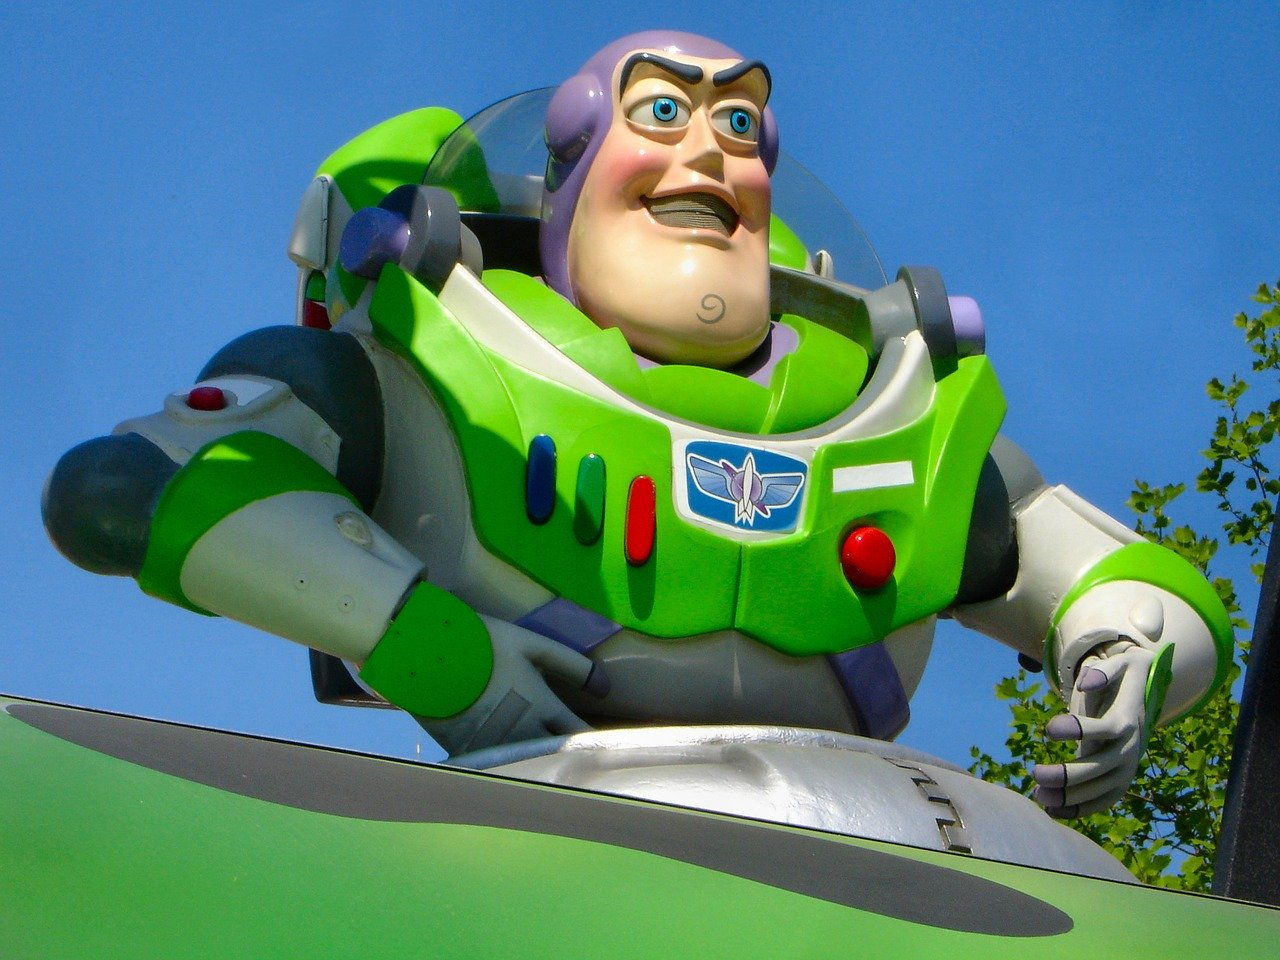 22 Iconic Movies From Pixar you Should Watch